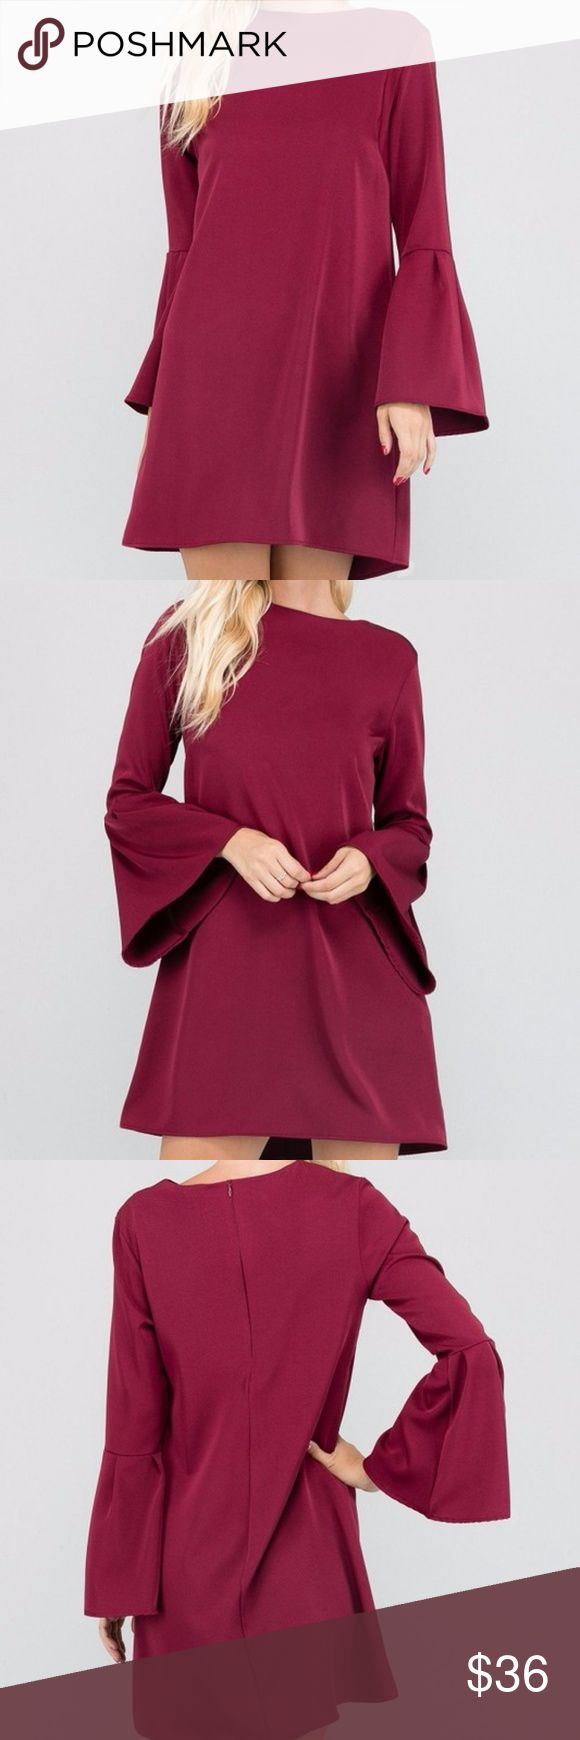 Burgundy  Bell Sleeve Mini Shift Dress Tunic Top Burgundy long Bell Sleeve mini Dress or Tunic Top. Hidden zipper back closure. Made of soft stretchy crepe fabric. Polyester spandex blend. Made in USA. Brand New factory direct.  Size S 2/4: Bust 33-34 Waist 25-26 Hips 35-36 Size M 6/8: Bust 35-36 Waist 27-28 Hips 37-38 Size L 10/12: Bust 37-38 Waist 29-30 Hips 39-40  Size chart provided as a guidance. Dresses Mini